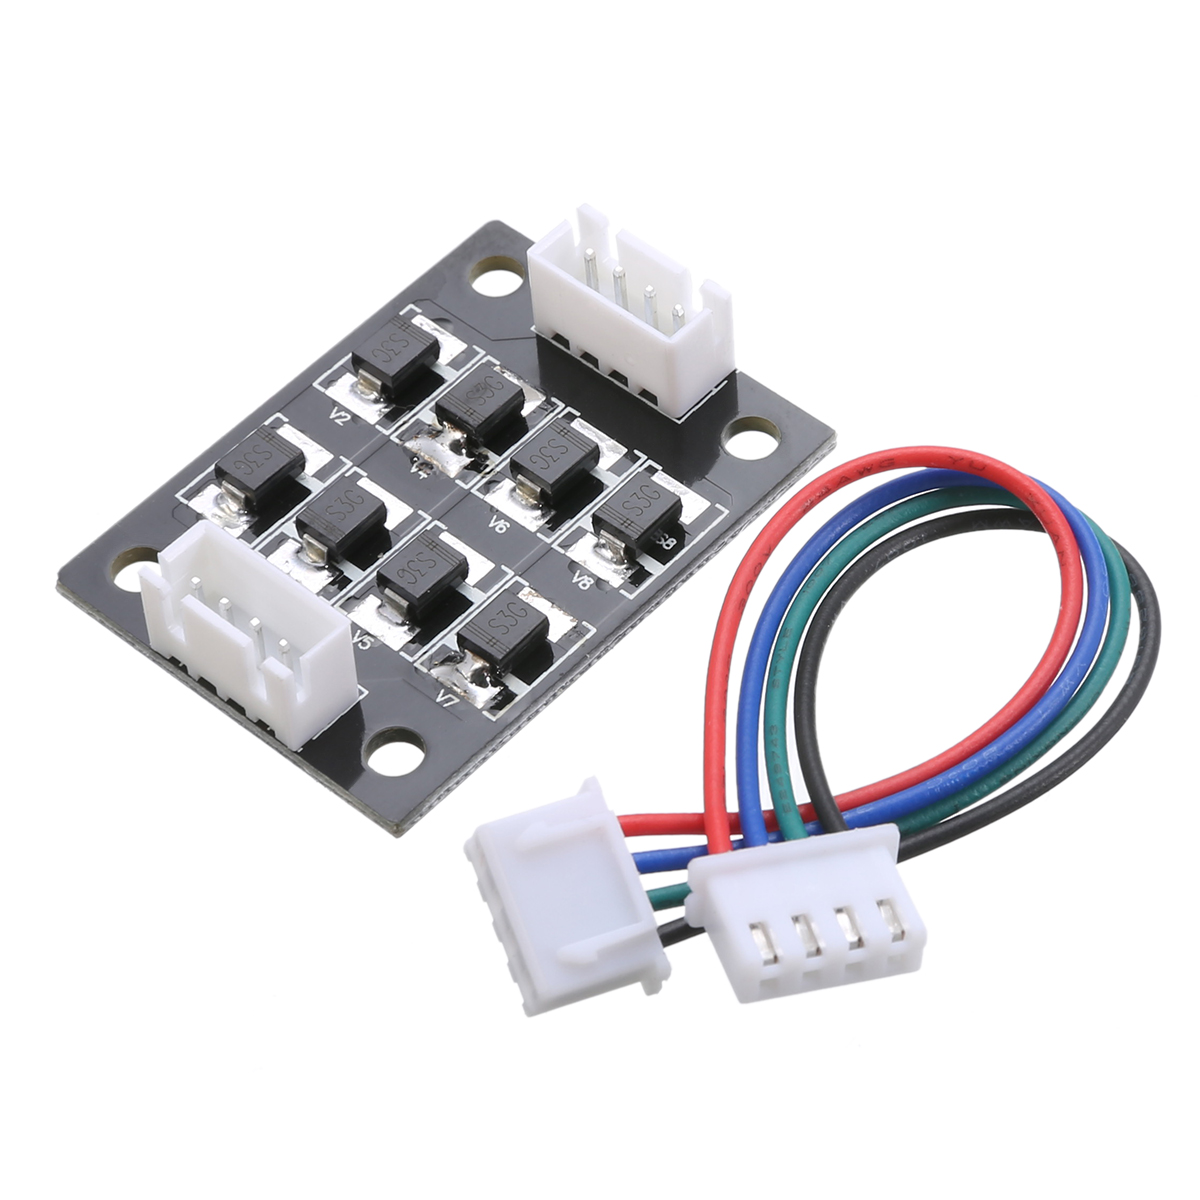 3D Printer Parts TL-Smoother V1.0 Addon Module For 3D Printer Stepper Motor Drivers Anet A8 A6 Ender